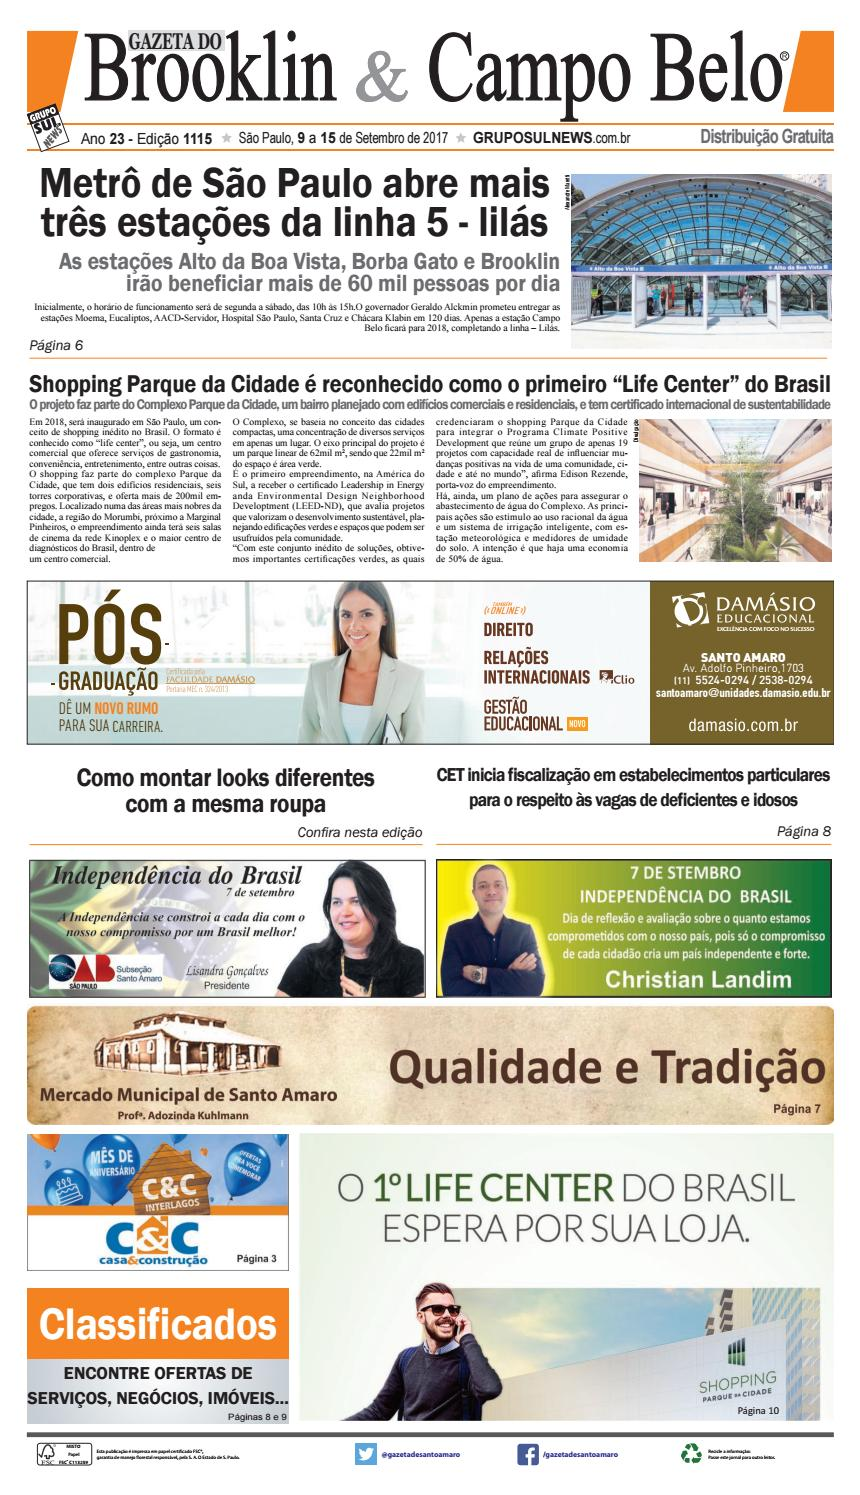 6777f3ad3 09 09 bcp by Grupo Sul News - issuu